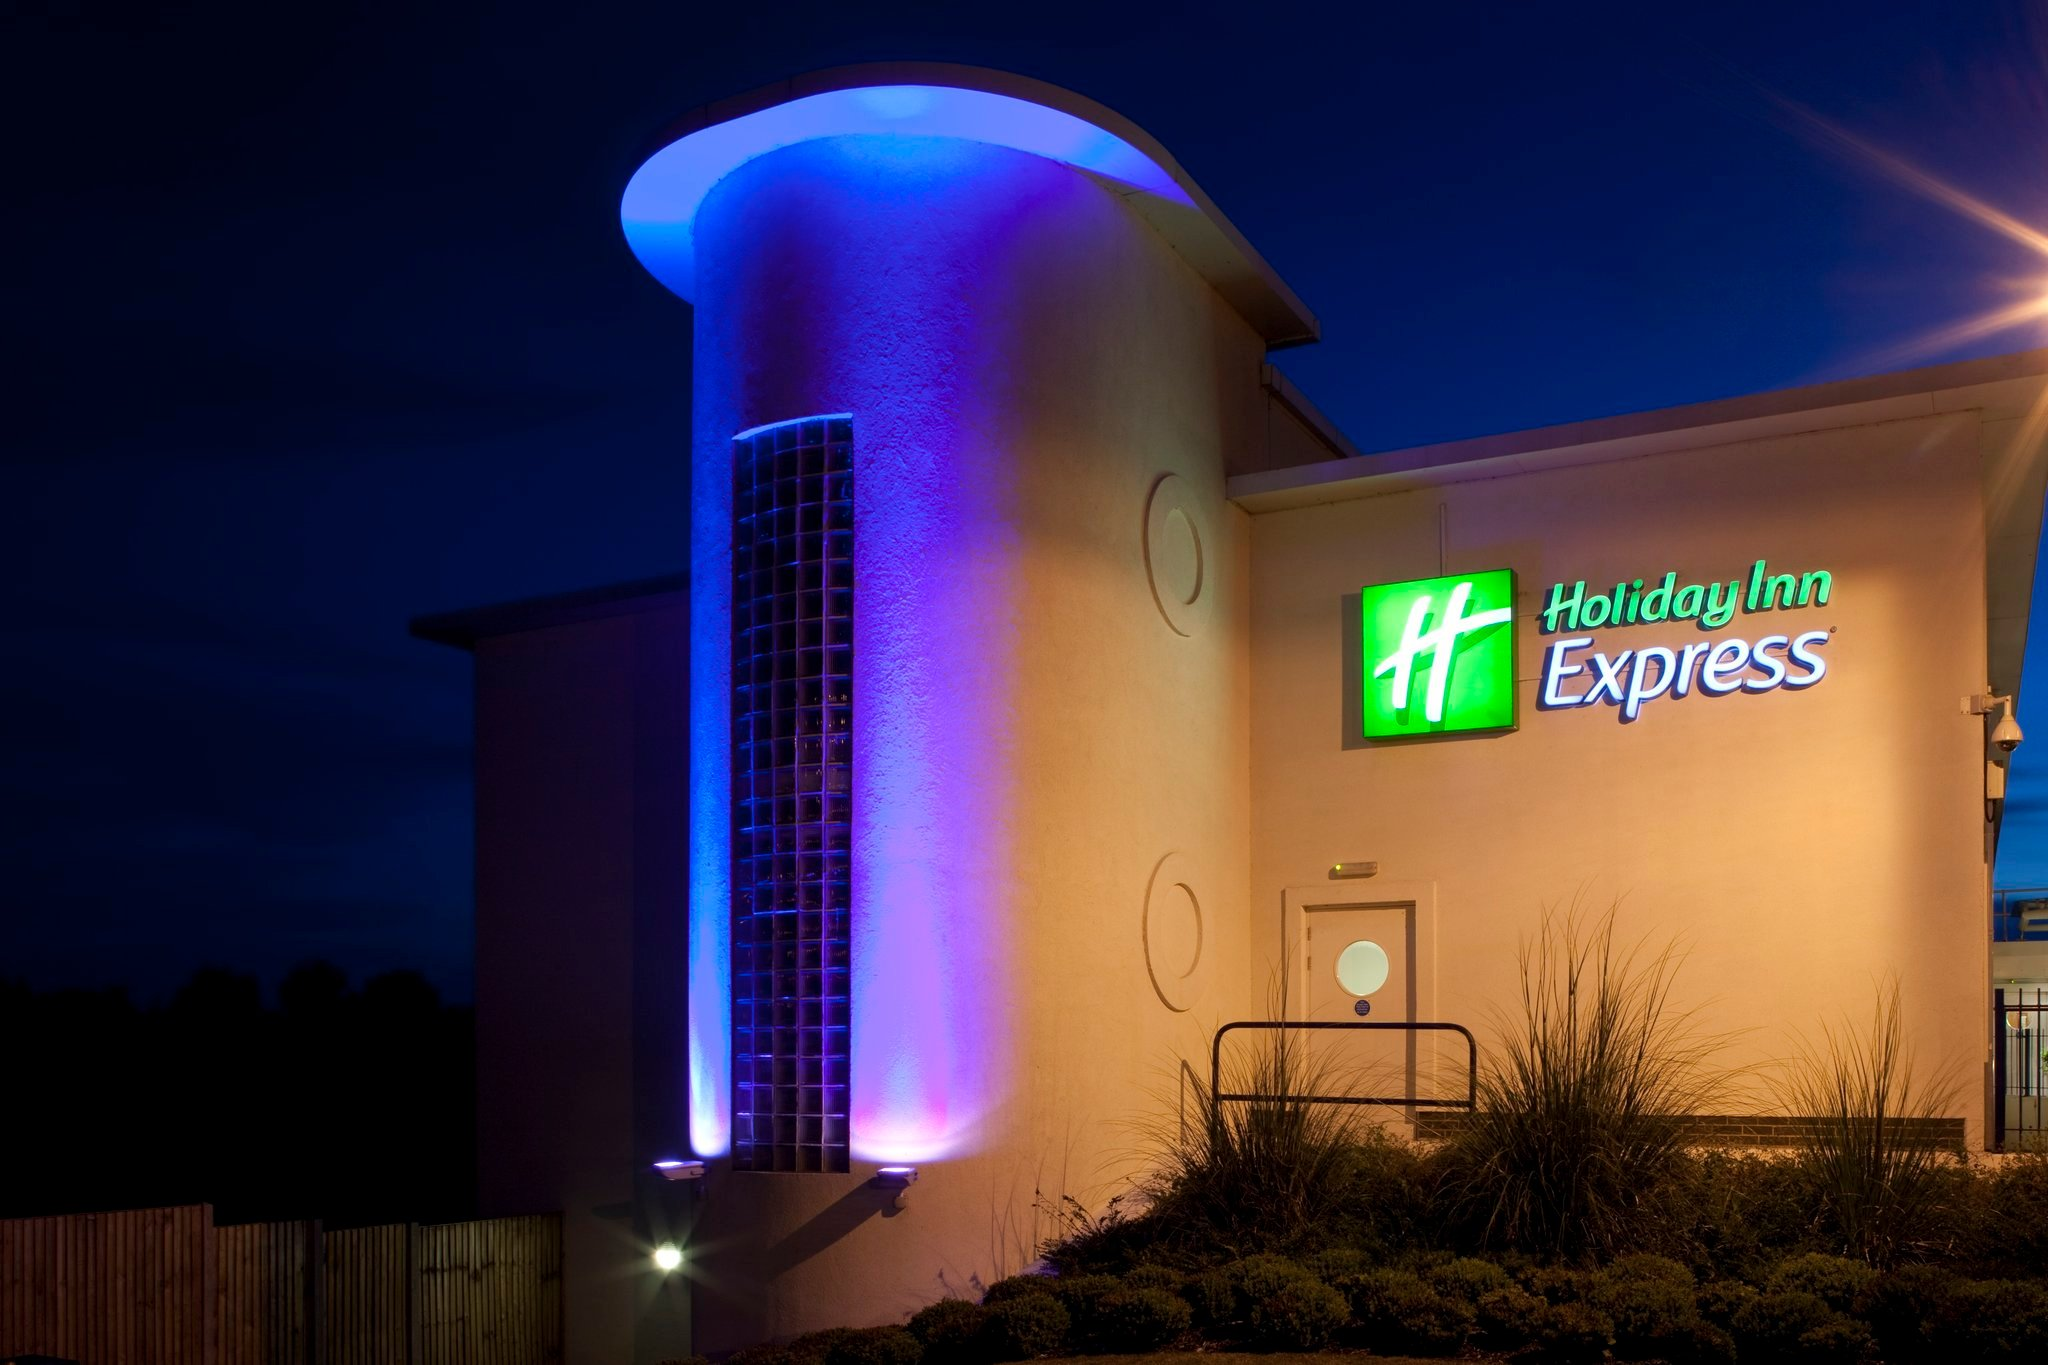 Holiday Inn Express, Ramsgate - Minster